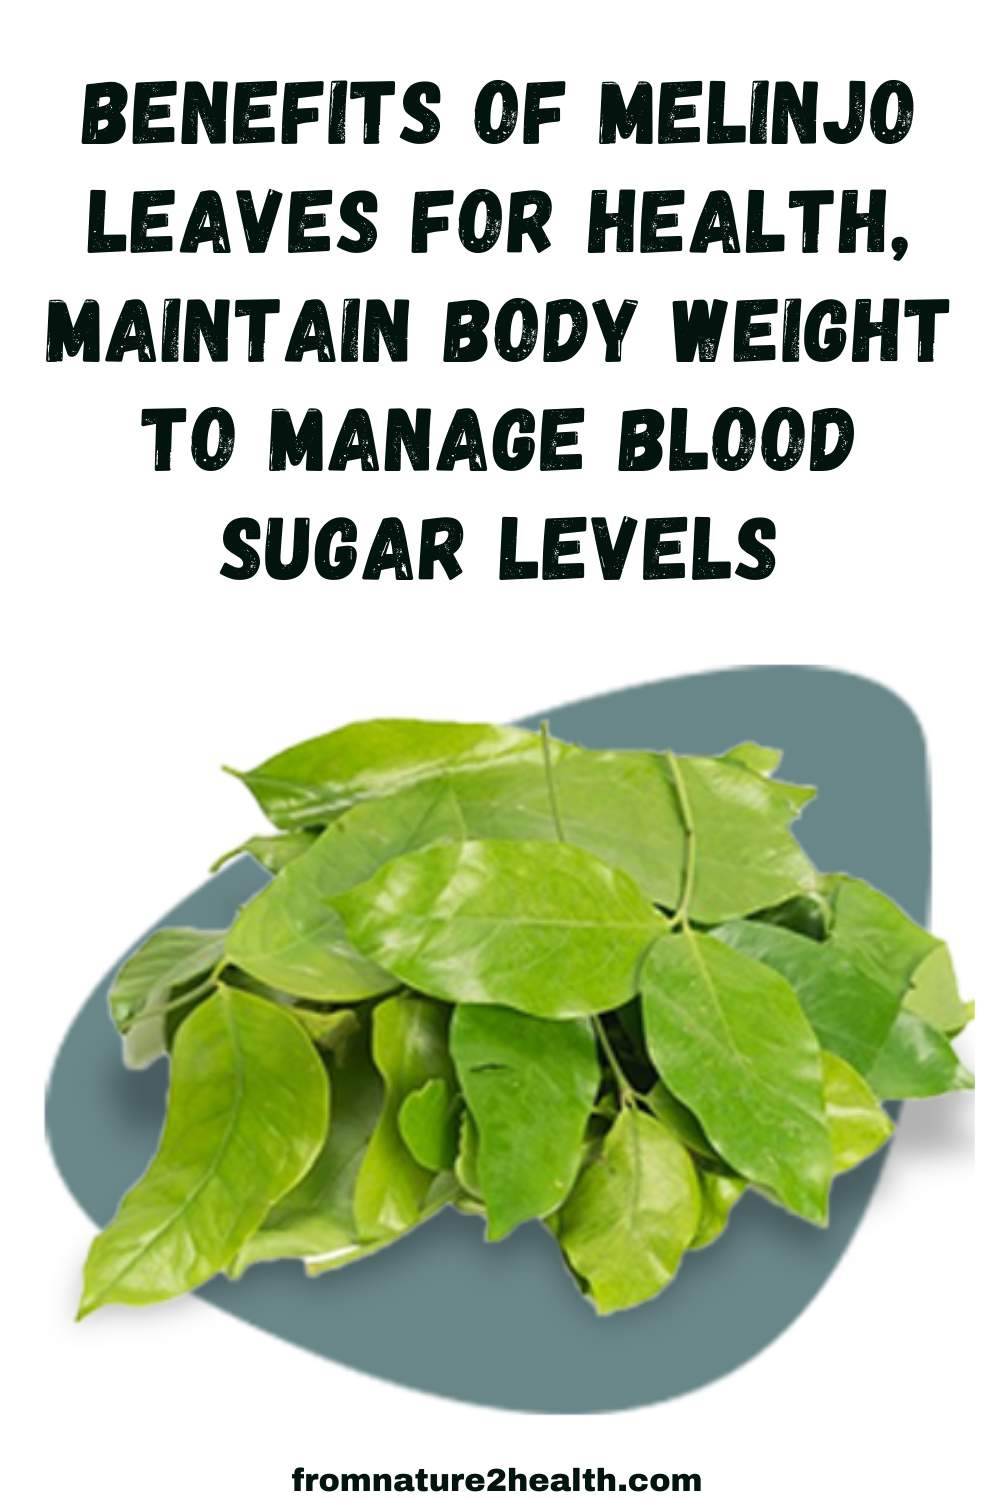 Benefits of Melinjo Leaves for Health, Maintain Body Weight to Manage Blood Sugar Levels